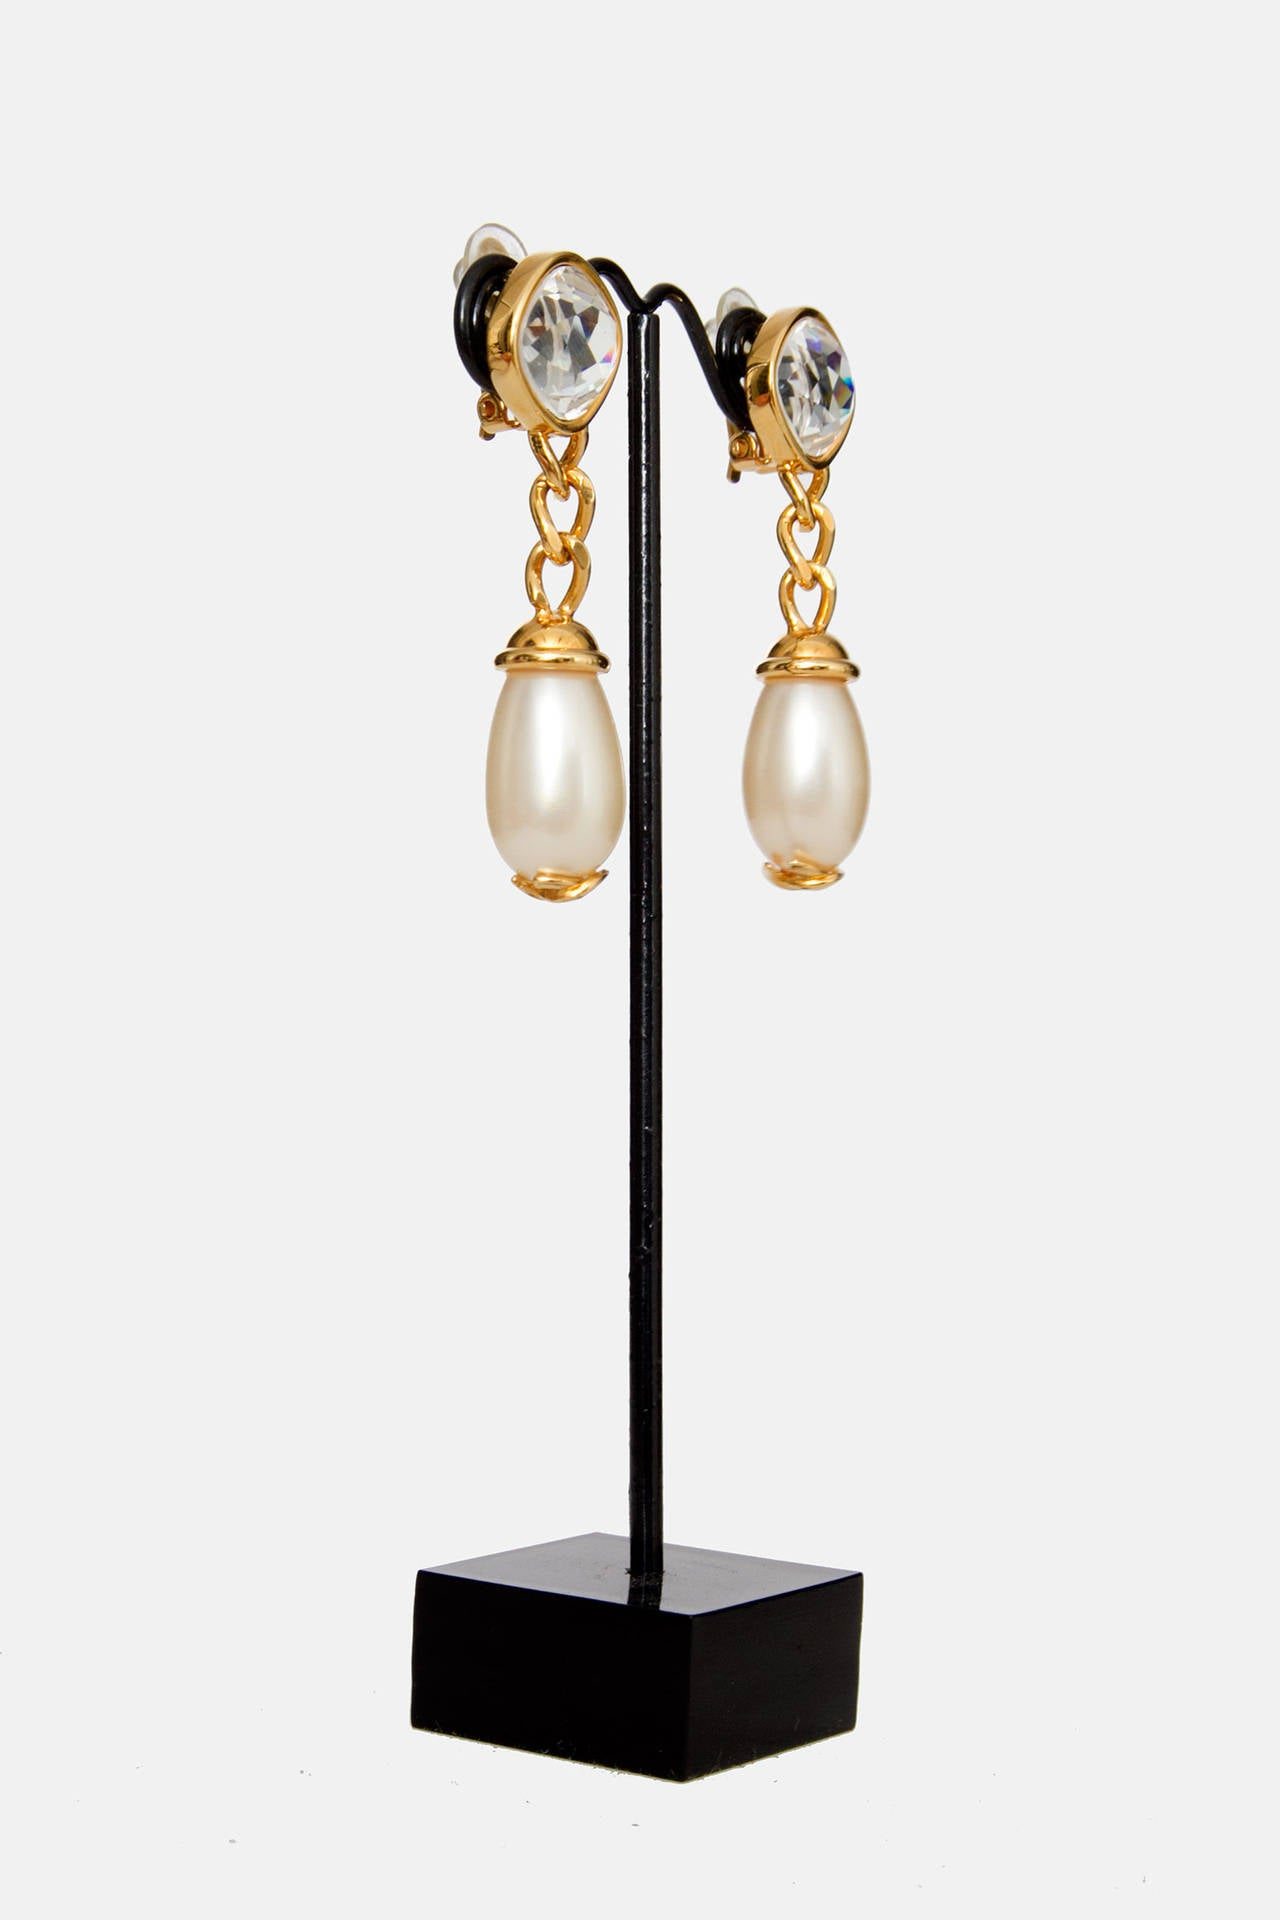 A Pair Of '97 Chanel Mother of Pearl Drop Earrings 4